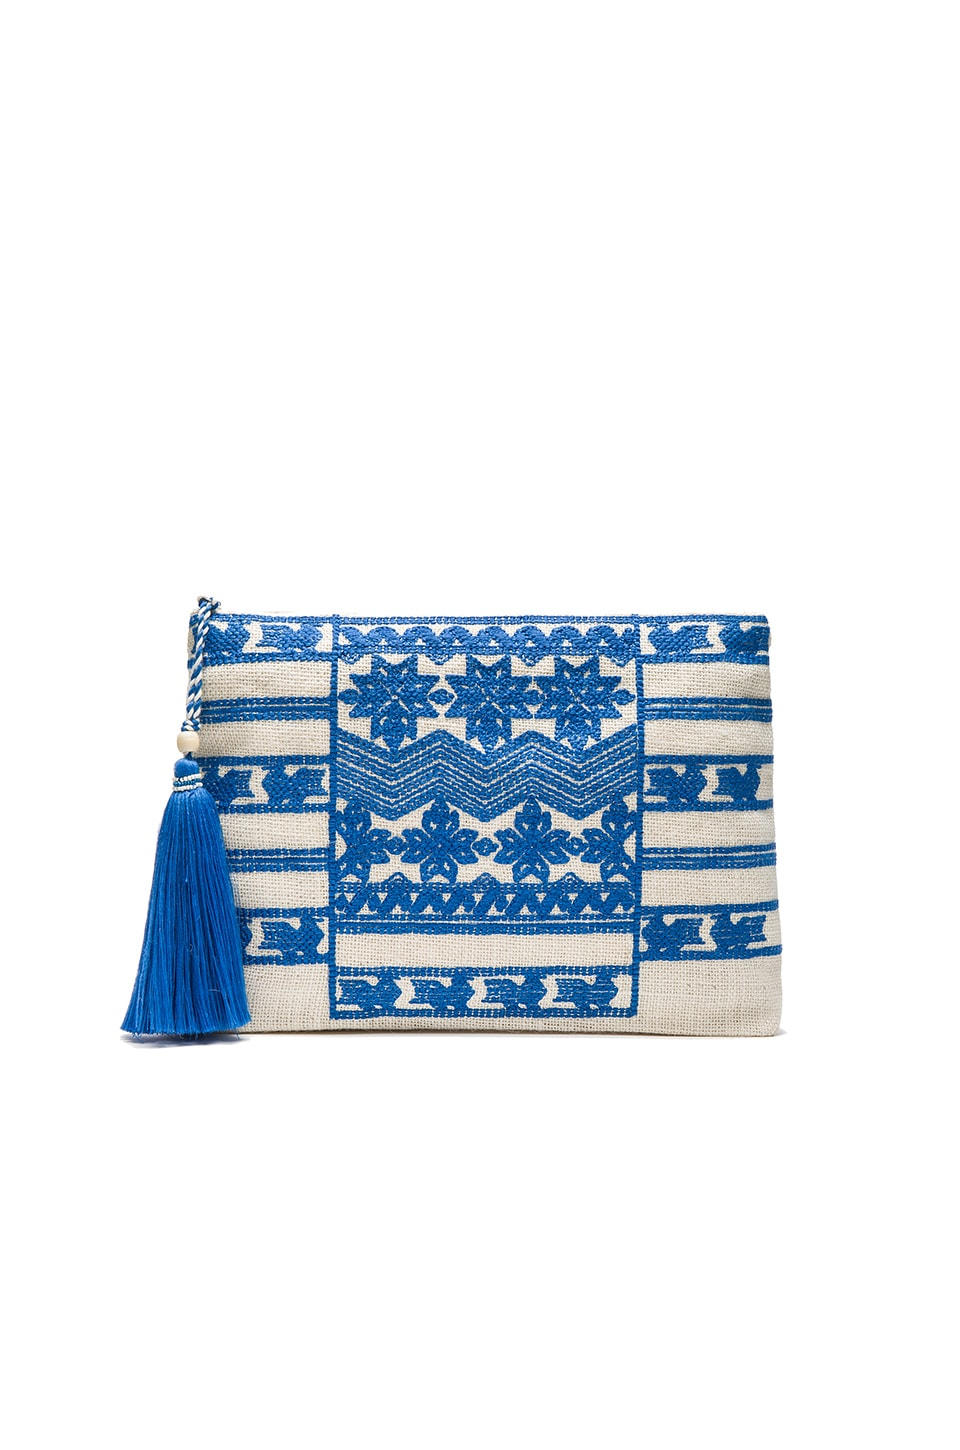 Star Mela Leila Embroidered Purse in Ivory & Blue